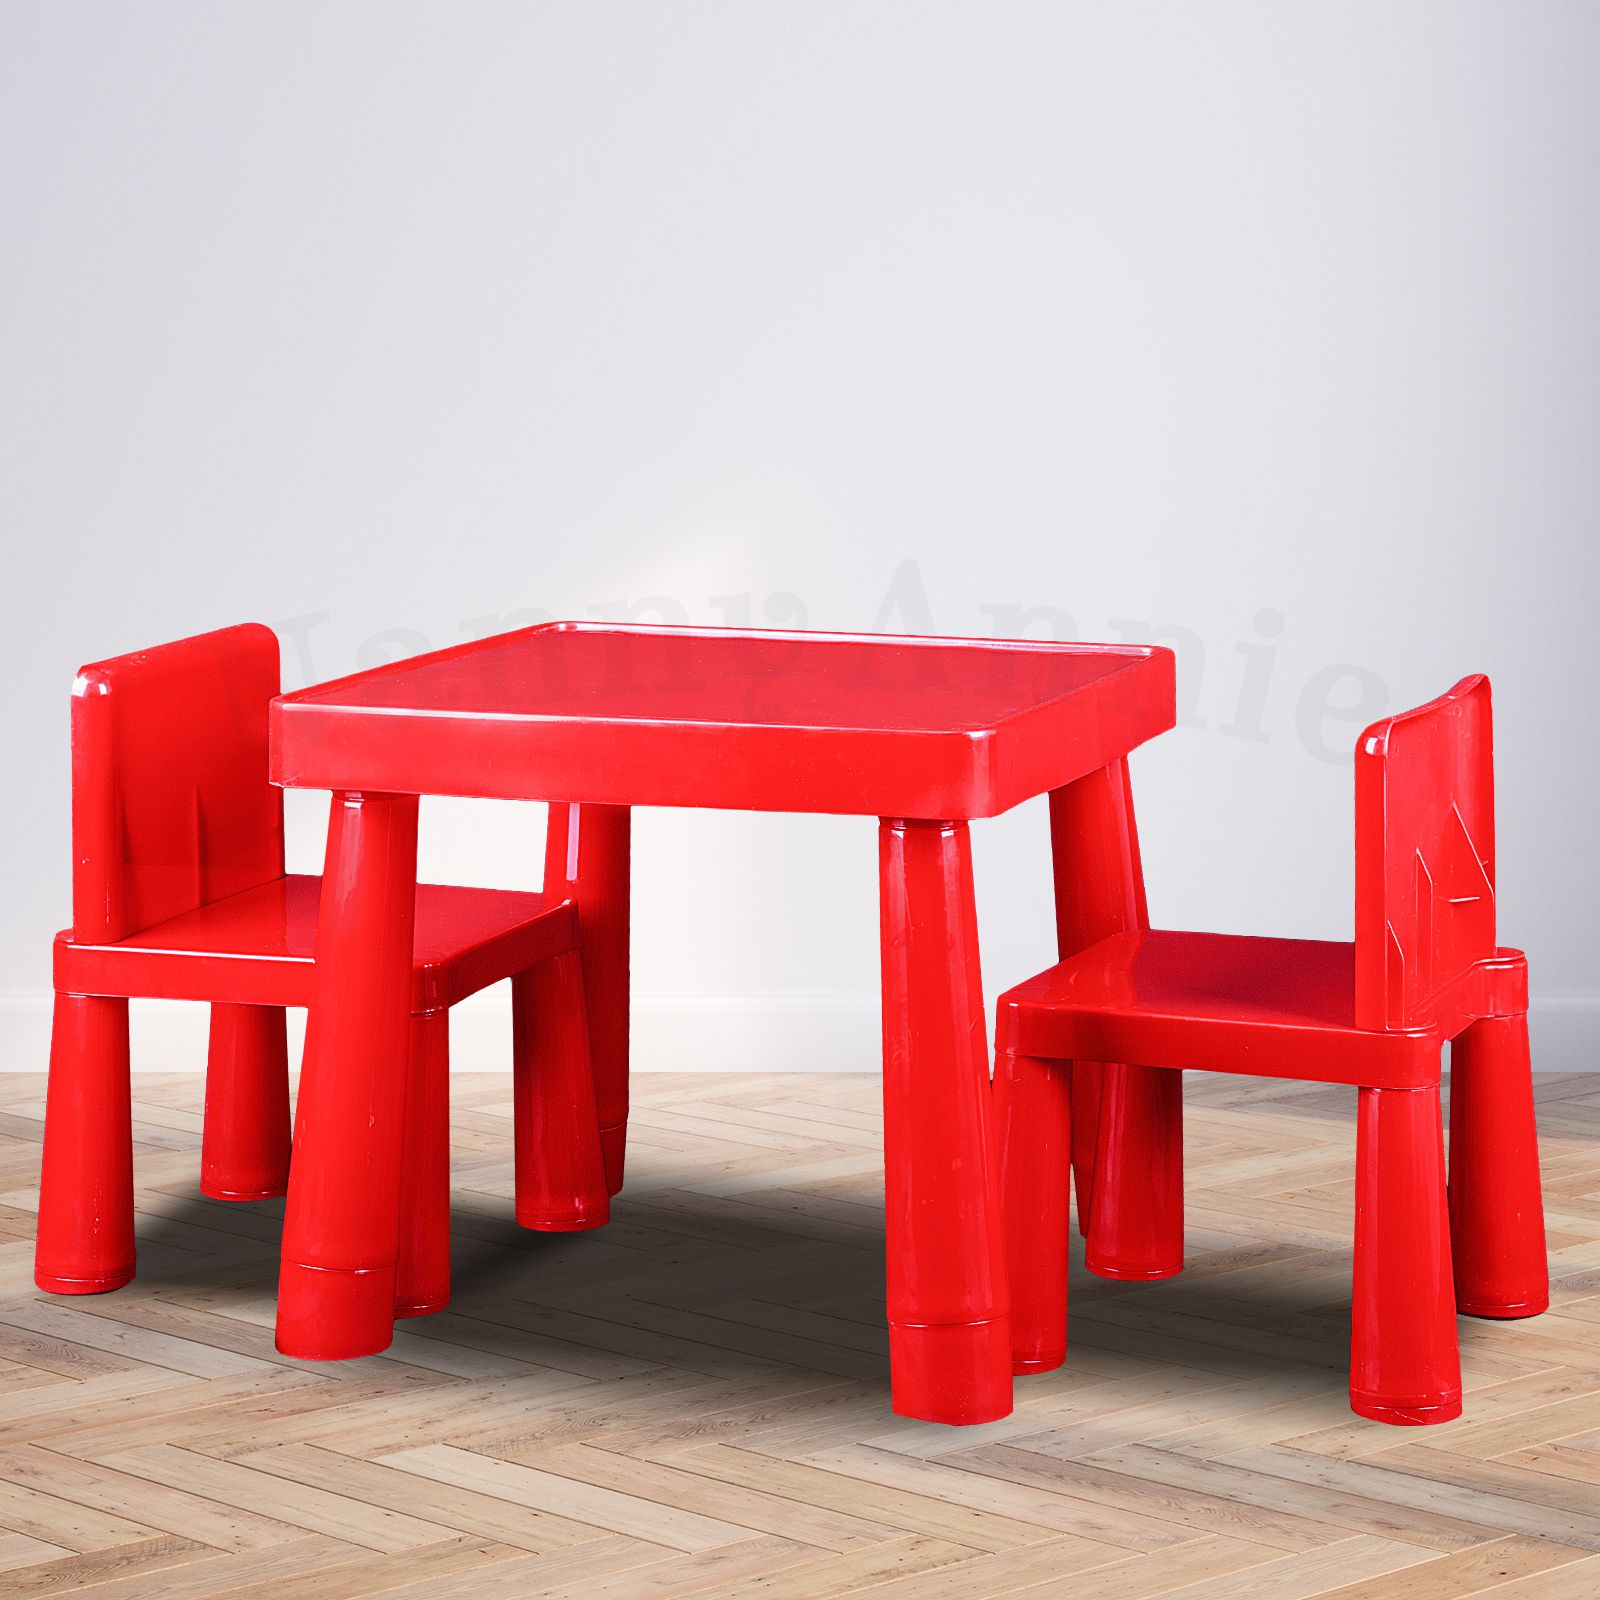 Infant Table And Chairs Kids Table Chair Play Furniture Set Plastic Fountain Activity Dining Chairs Red